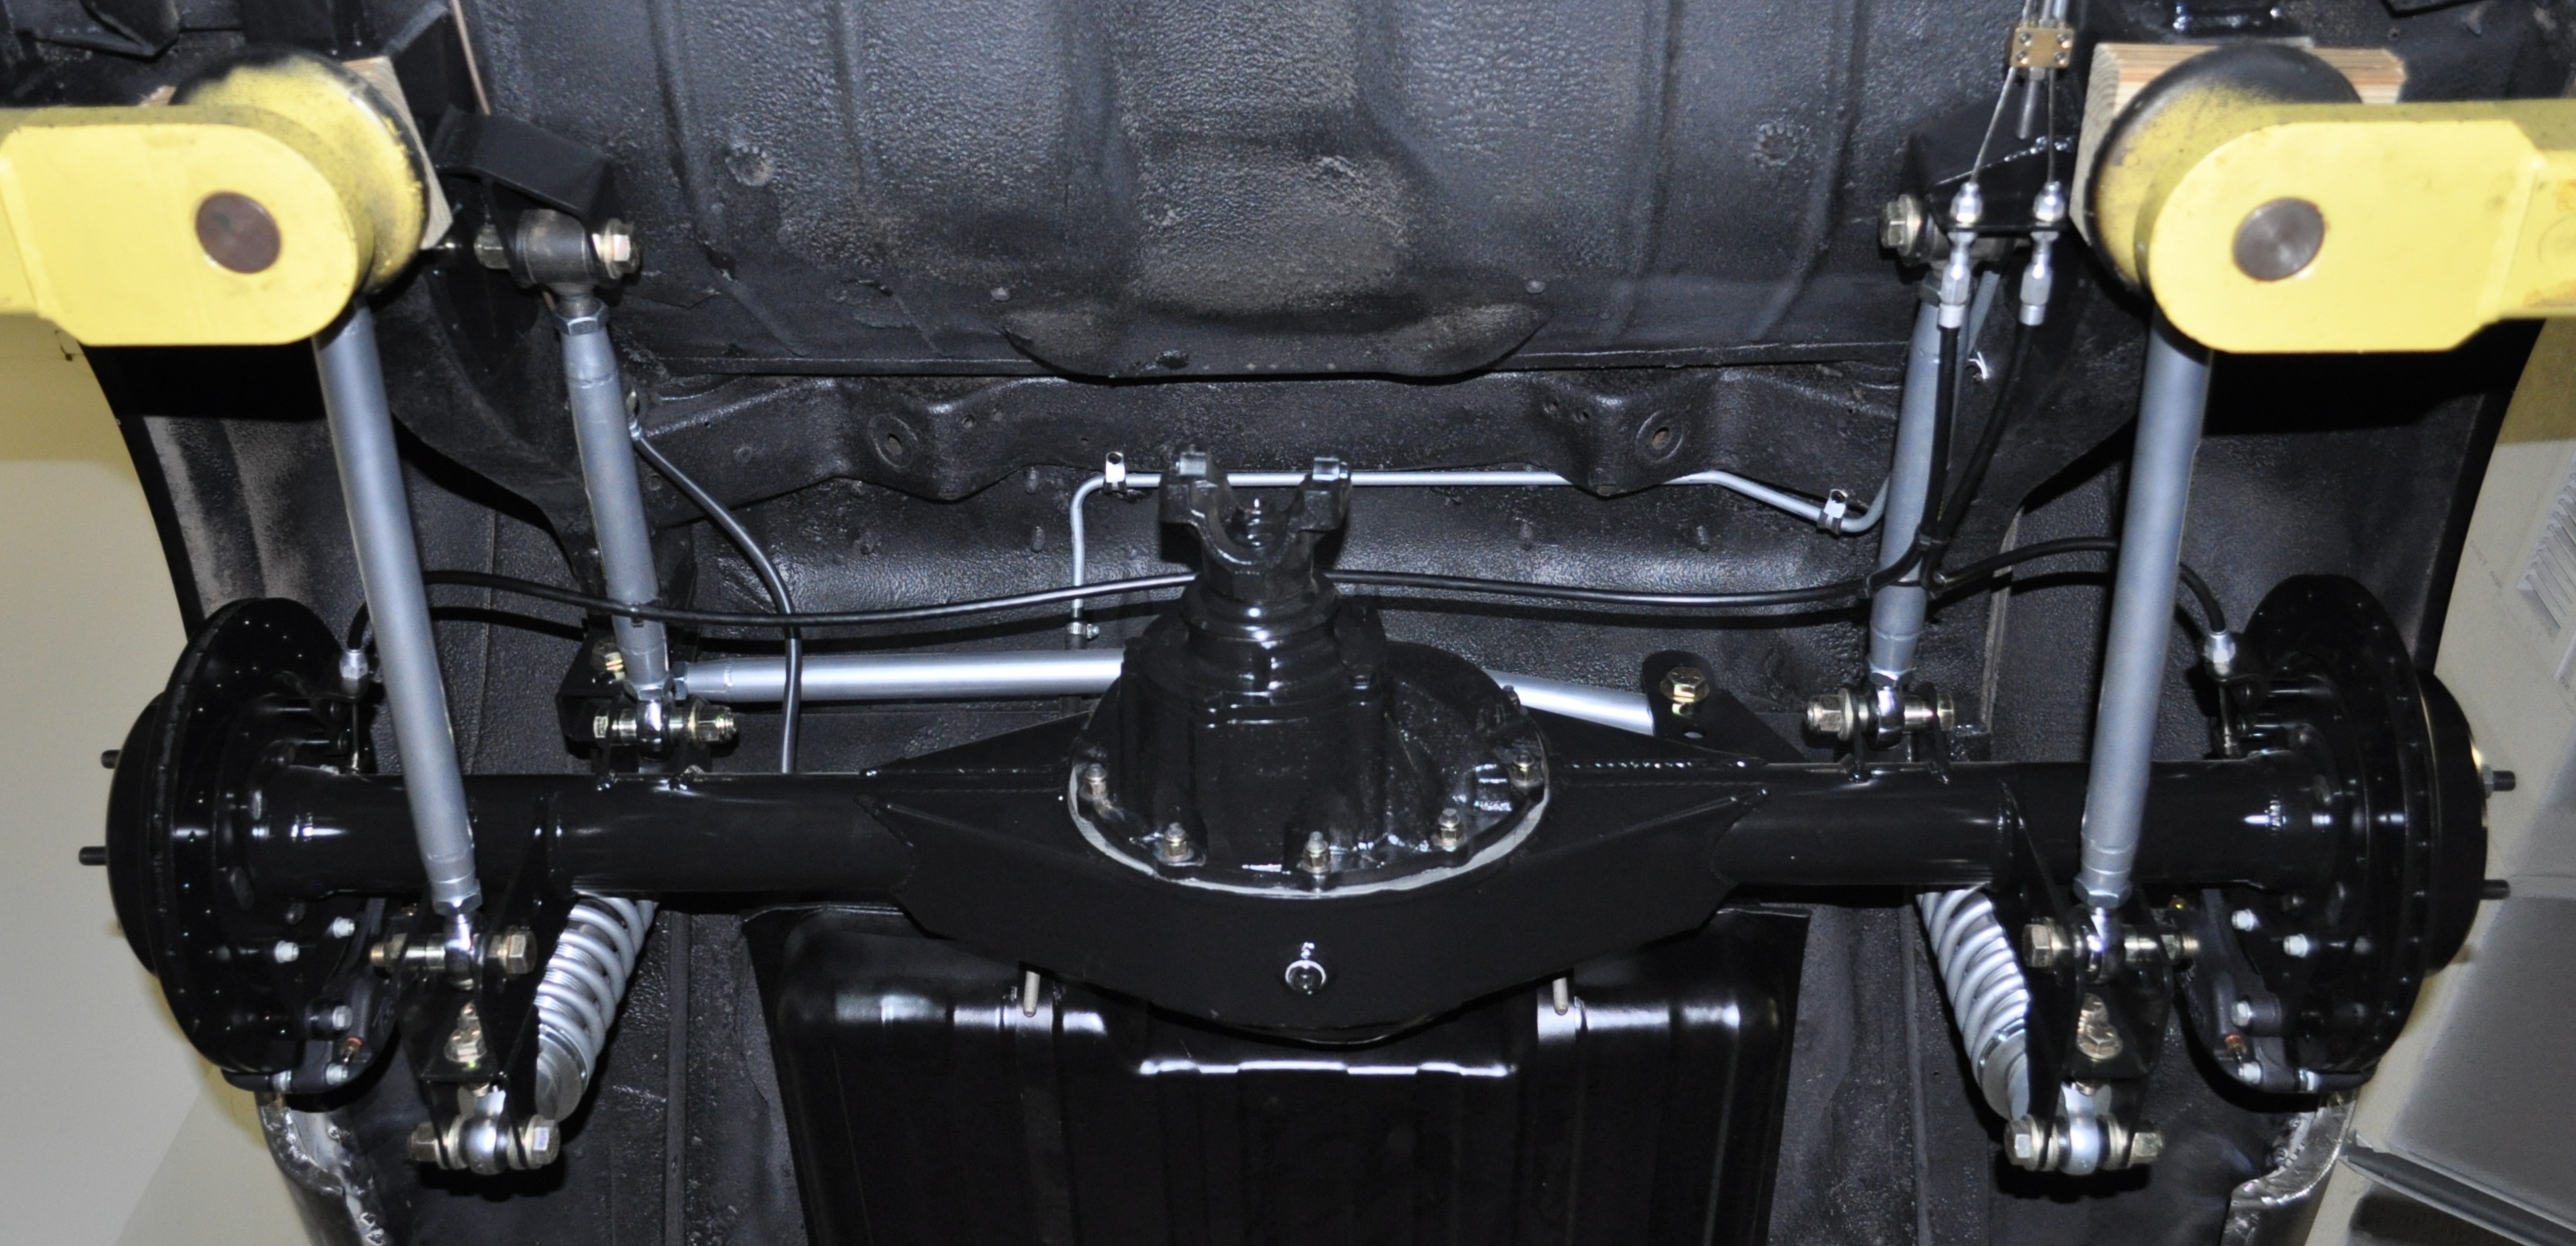 4-Link AMC Coil-Over Rear Suspension Systems | Control Freak Suspensions